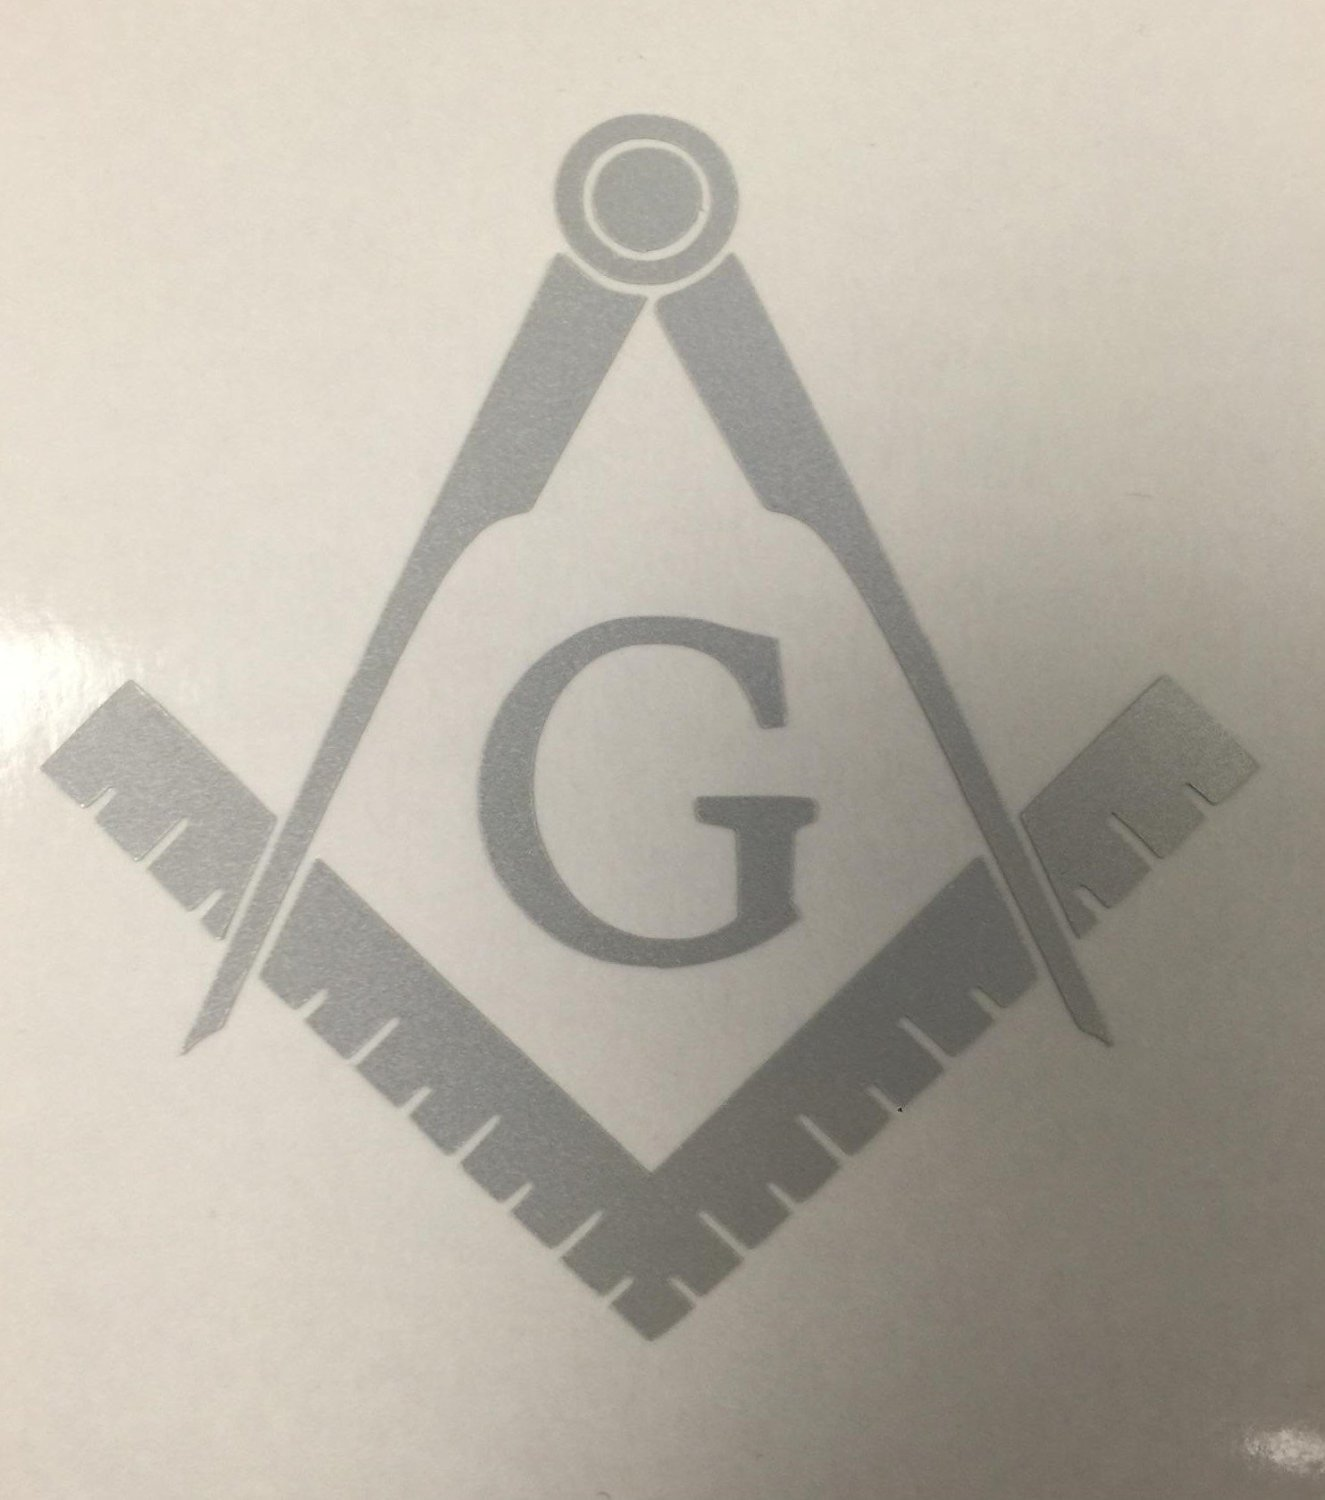 White Reflective C60492 Masonic Series Freemason Compass Square Decal 5x5 Check6